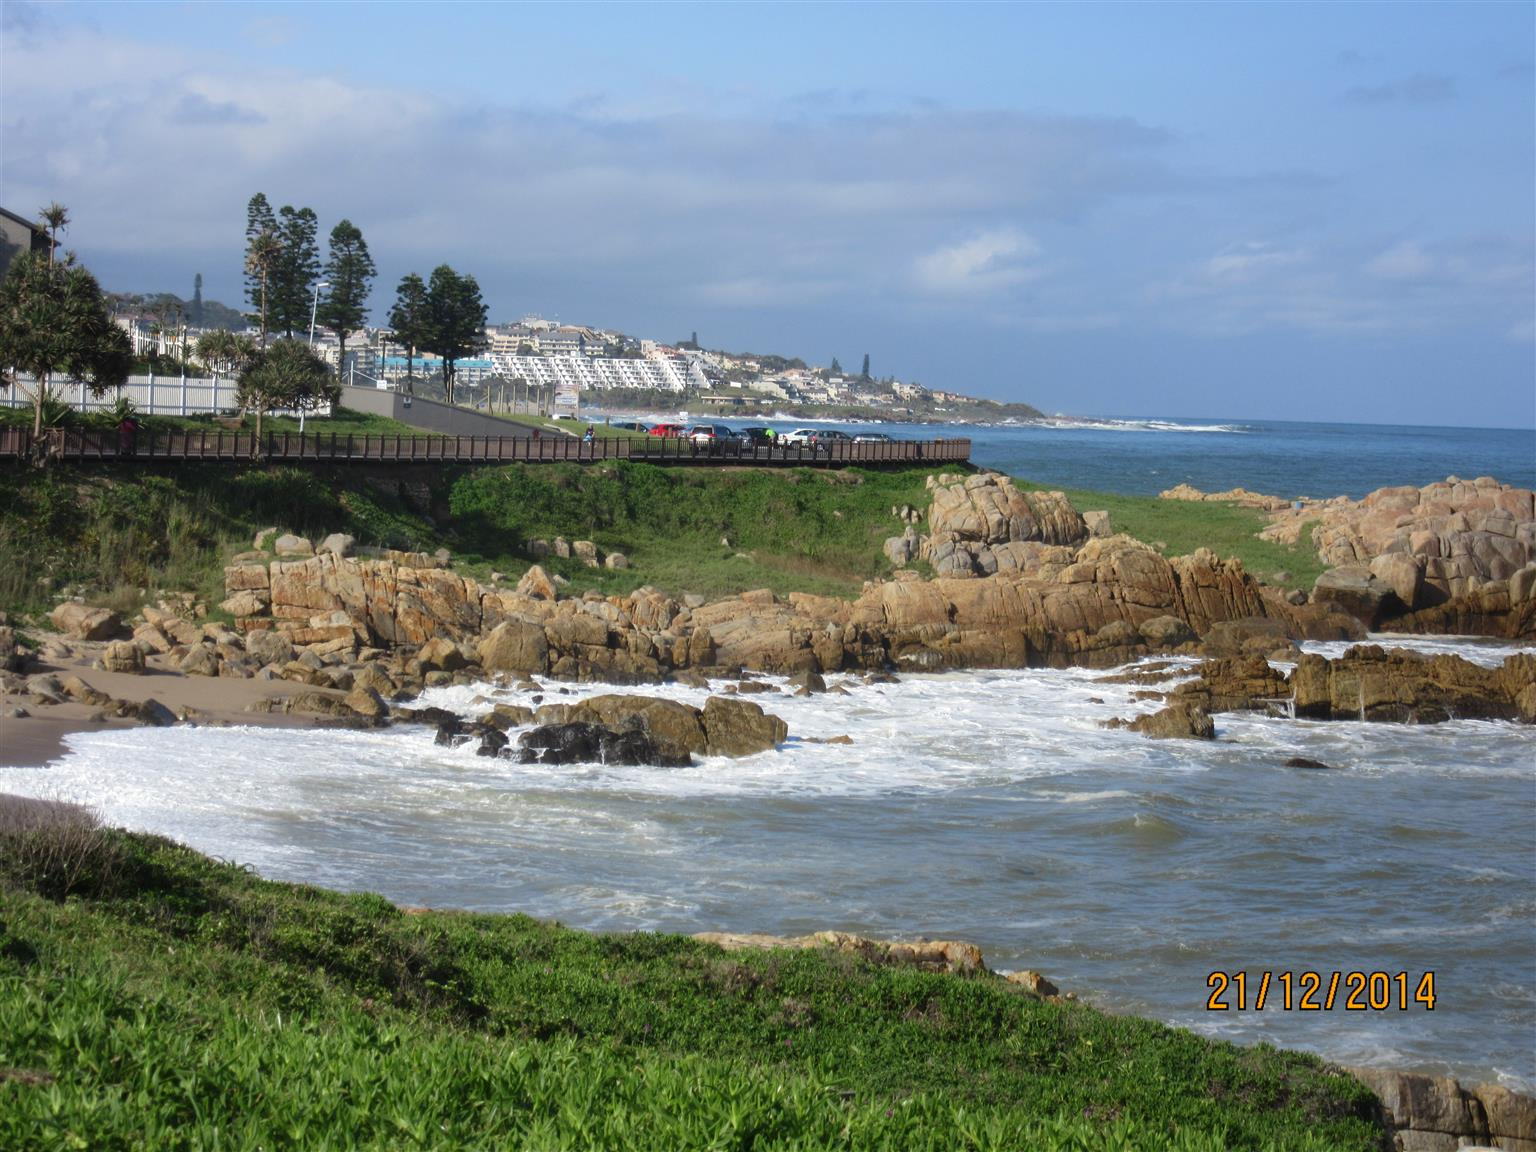 SEA, SUN, FUN SEA VIEW SELF-CATERING HOLIDAY ACCOMMODATION 3 BEDROOM 2 BATHROOM FROM R3600 PER WEEK